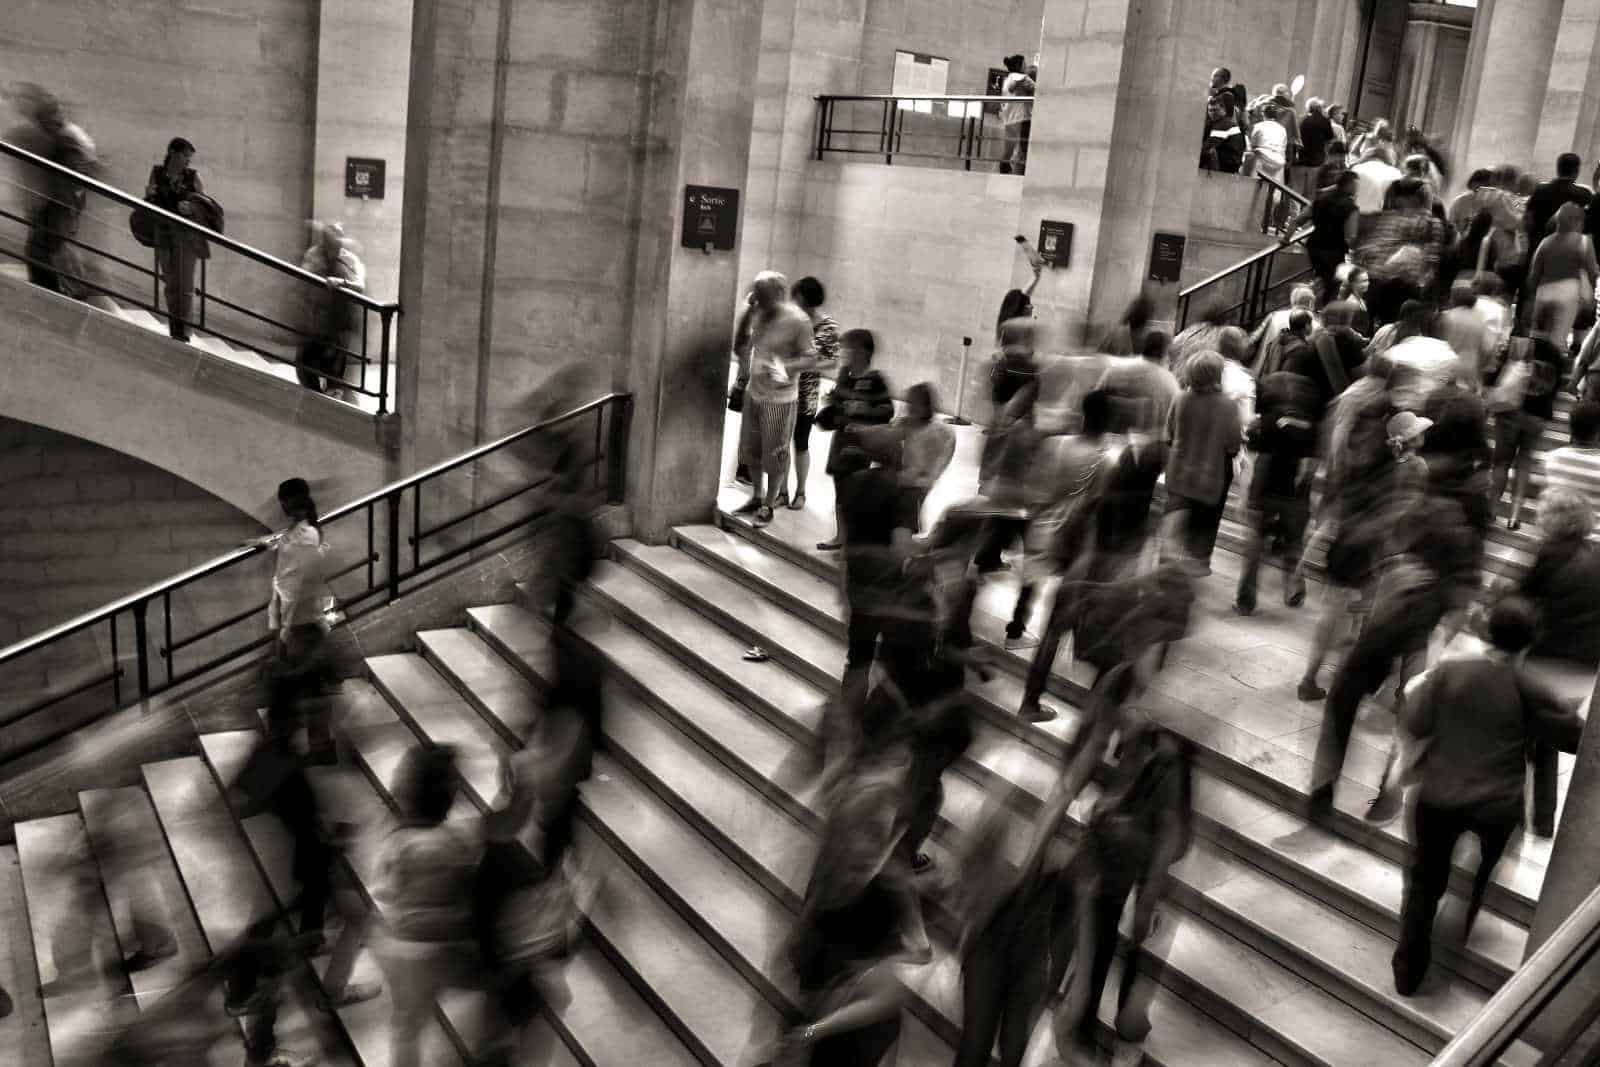 blurred image of workers on stone steps - penguin management services, sydney